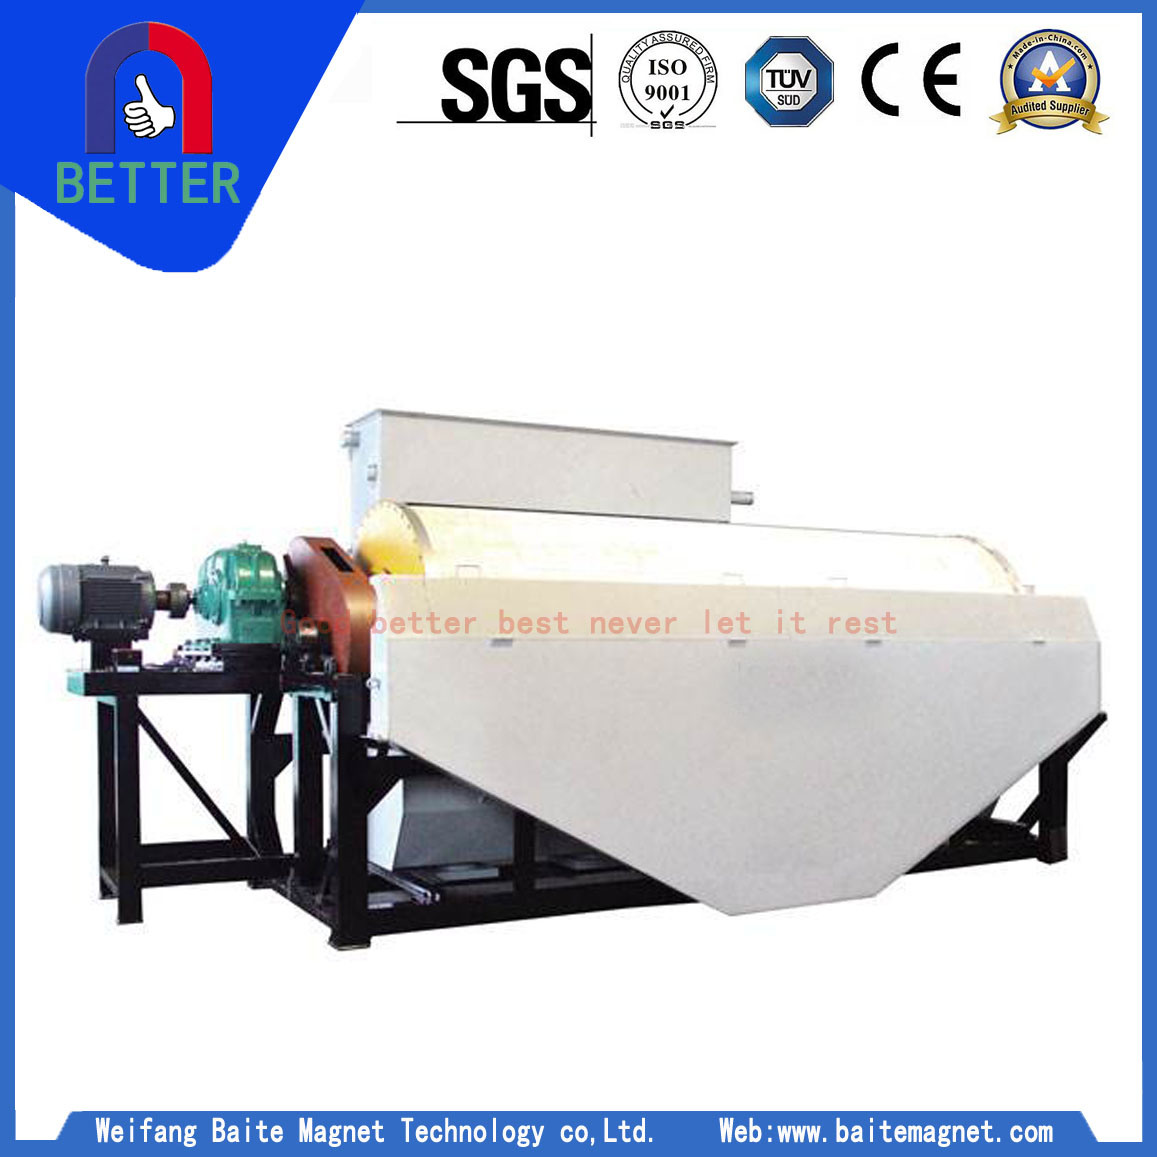 Series Cty Permanent Magnetic Wet Magnetic Separator for Iron Ore Preconcentration